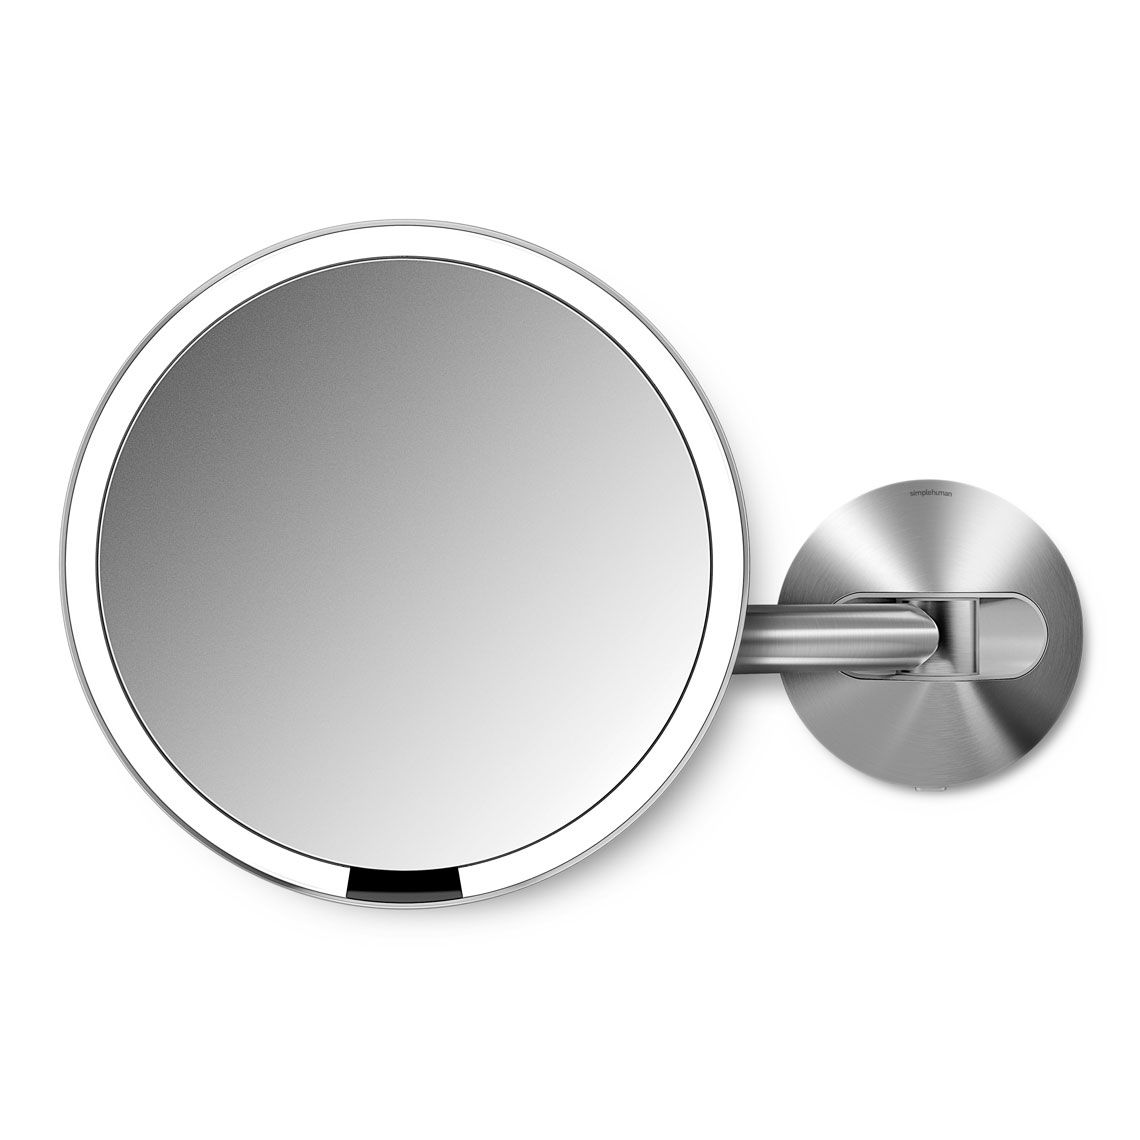 Hard Wired Wall Mount Sensor Mirror In 2020 Makeup Mirror With Lights Simplehuman Shaving Mirror